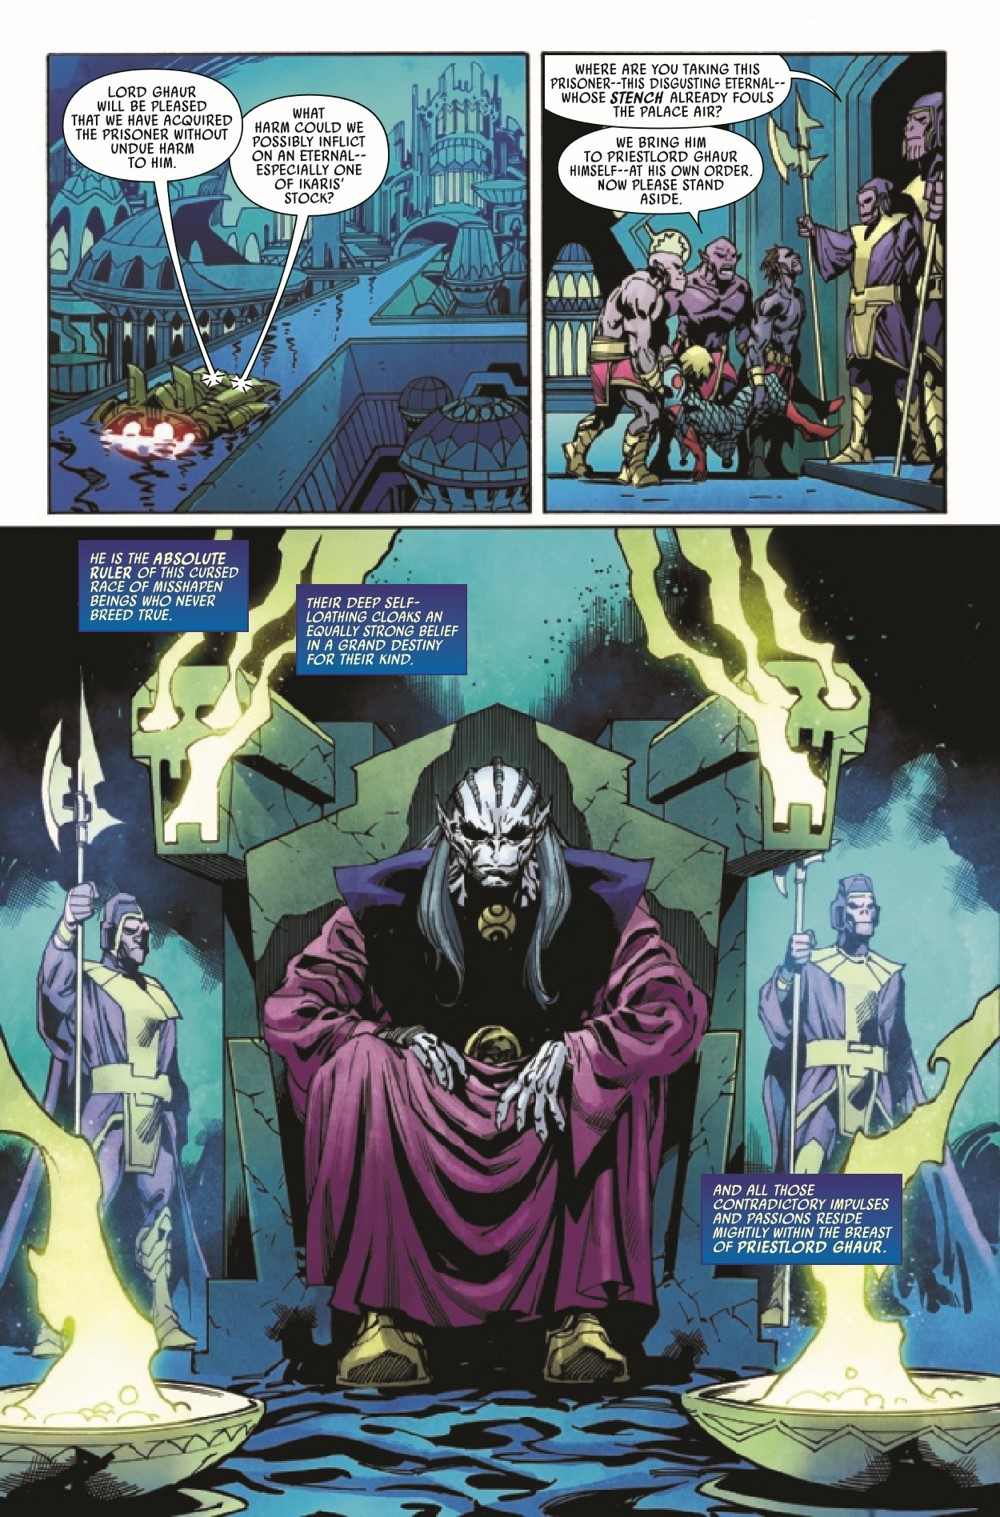 ETRNLSFOREVER2021001_Preview-5 ComicList Previews: ETERNALS FOREVER #1